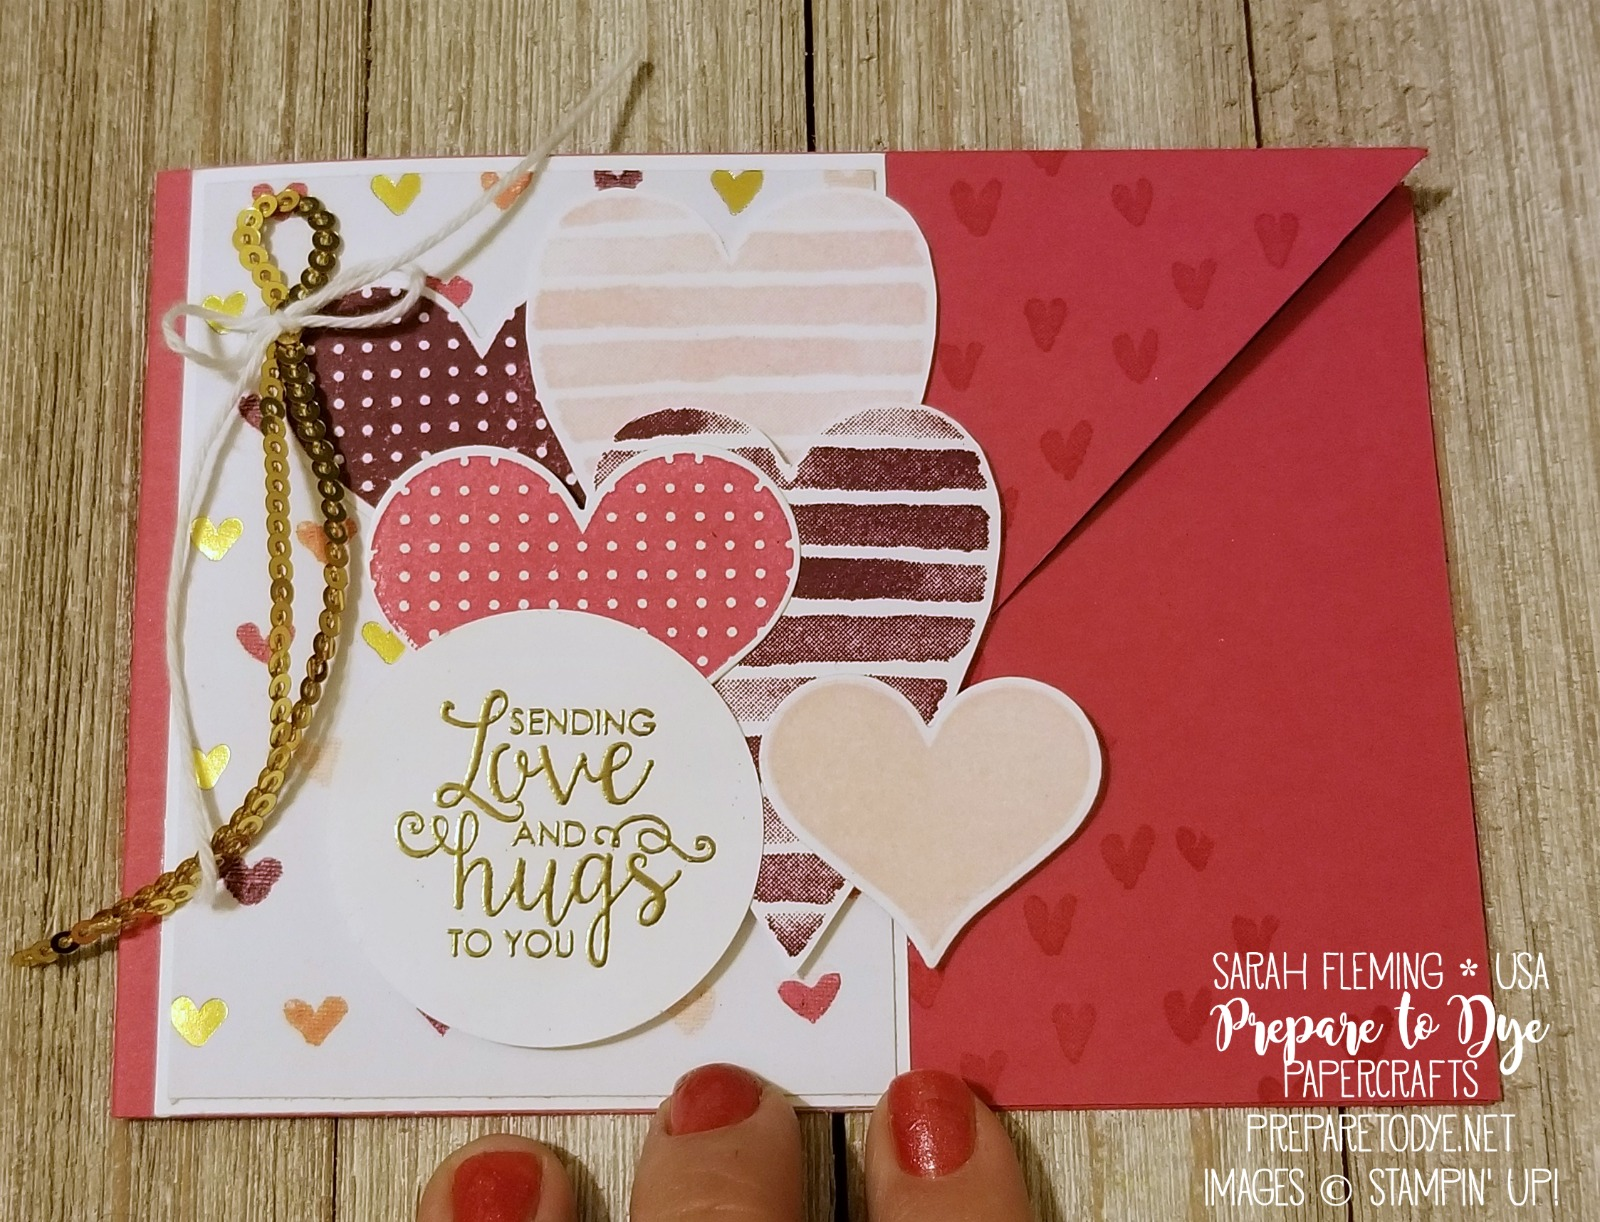 Stampin' Up! Heart Happiness and Ribbon of Courage stamps with Painted Love designer series paper - New Occasions 2018 catalog items - Sarah Fleming - Prepare to Dye Papercrafts - #IIBH